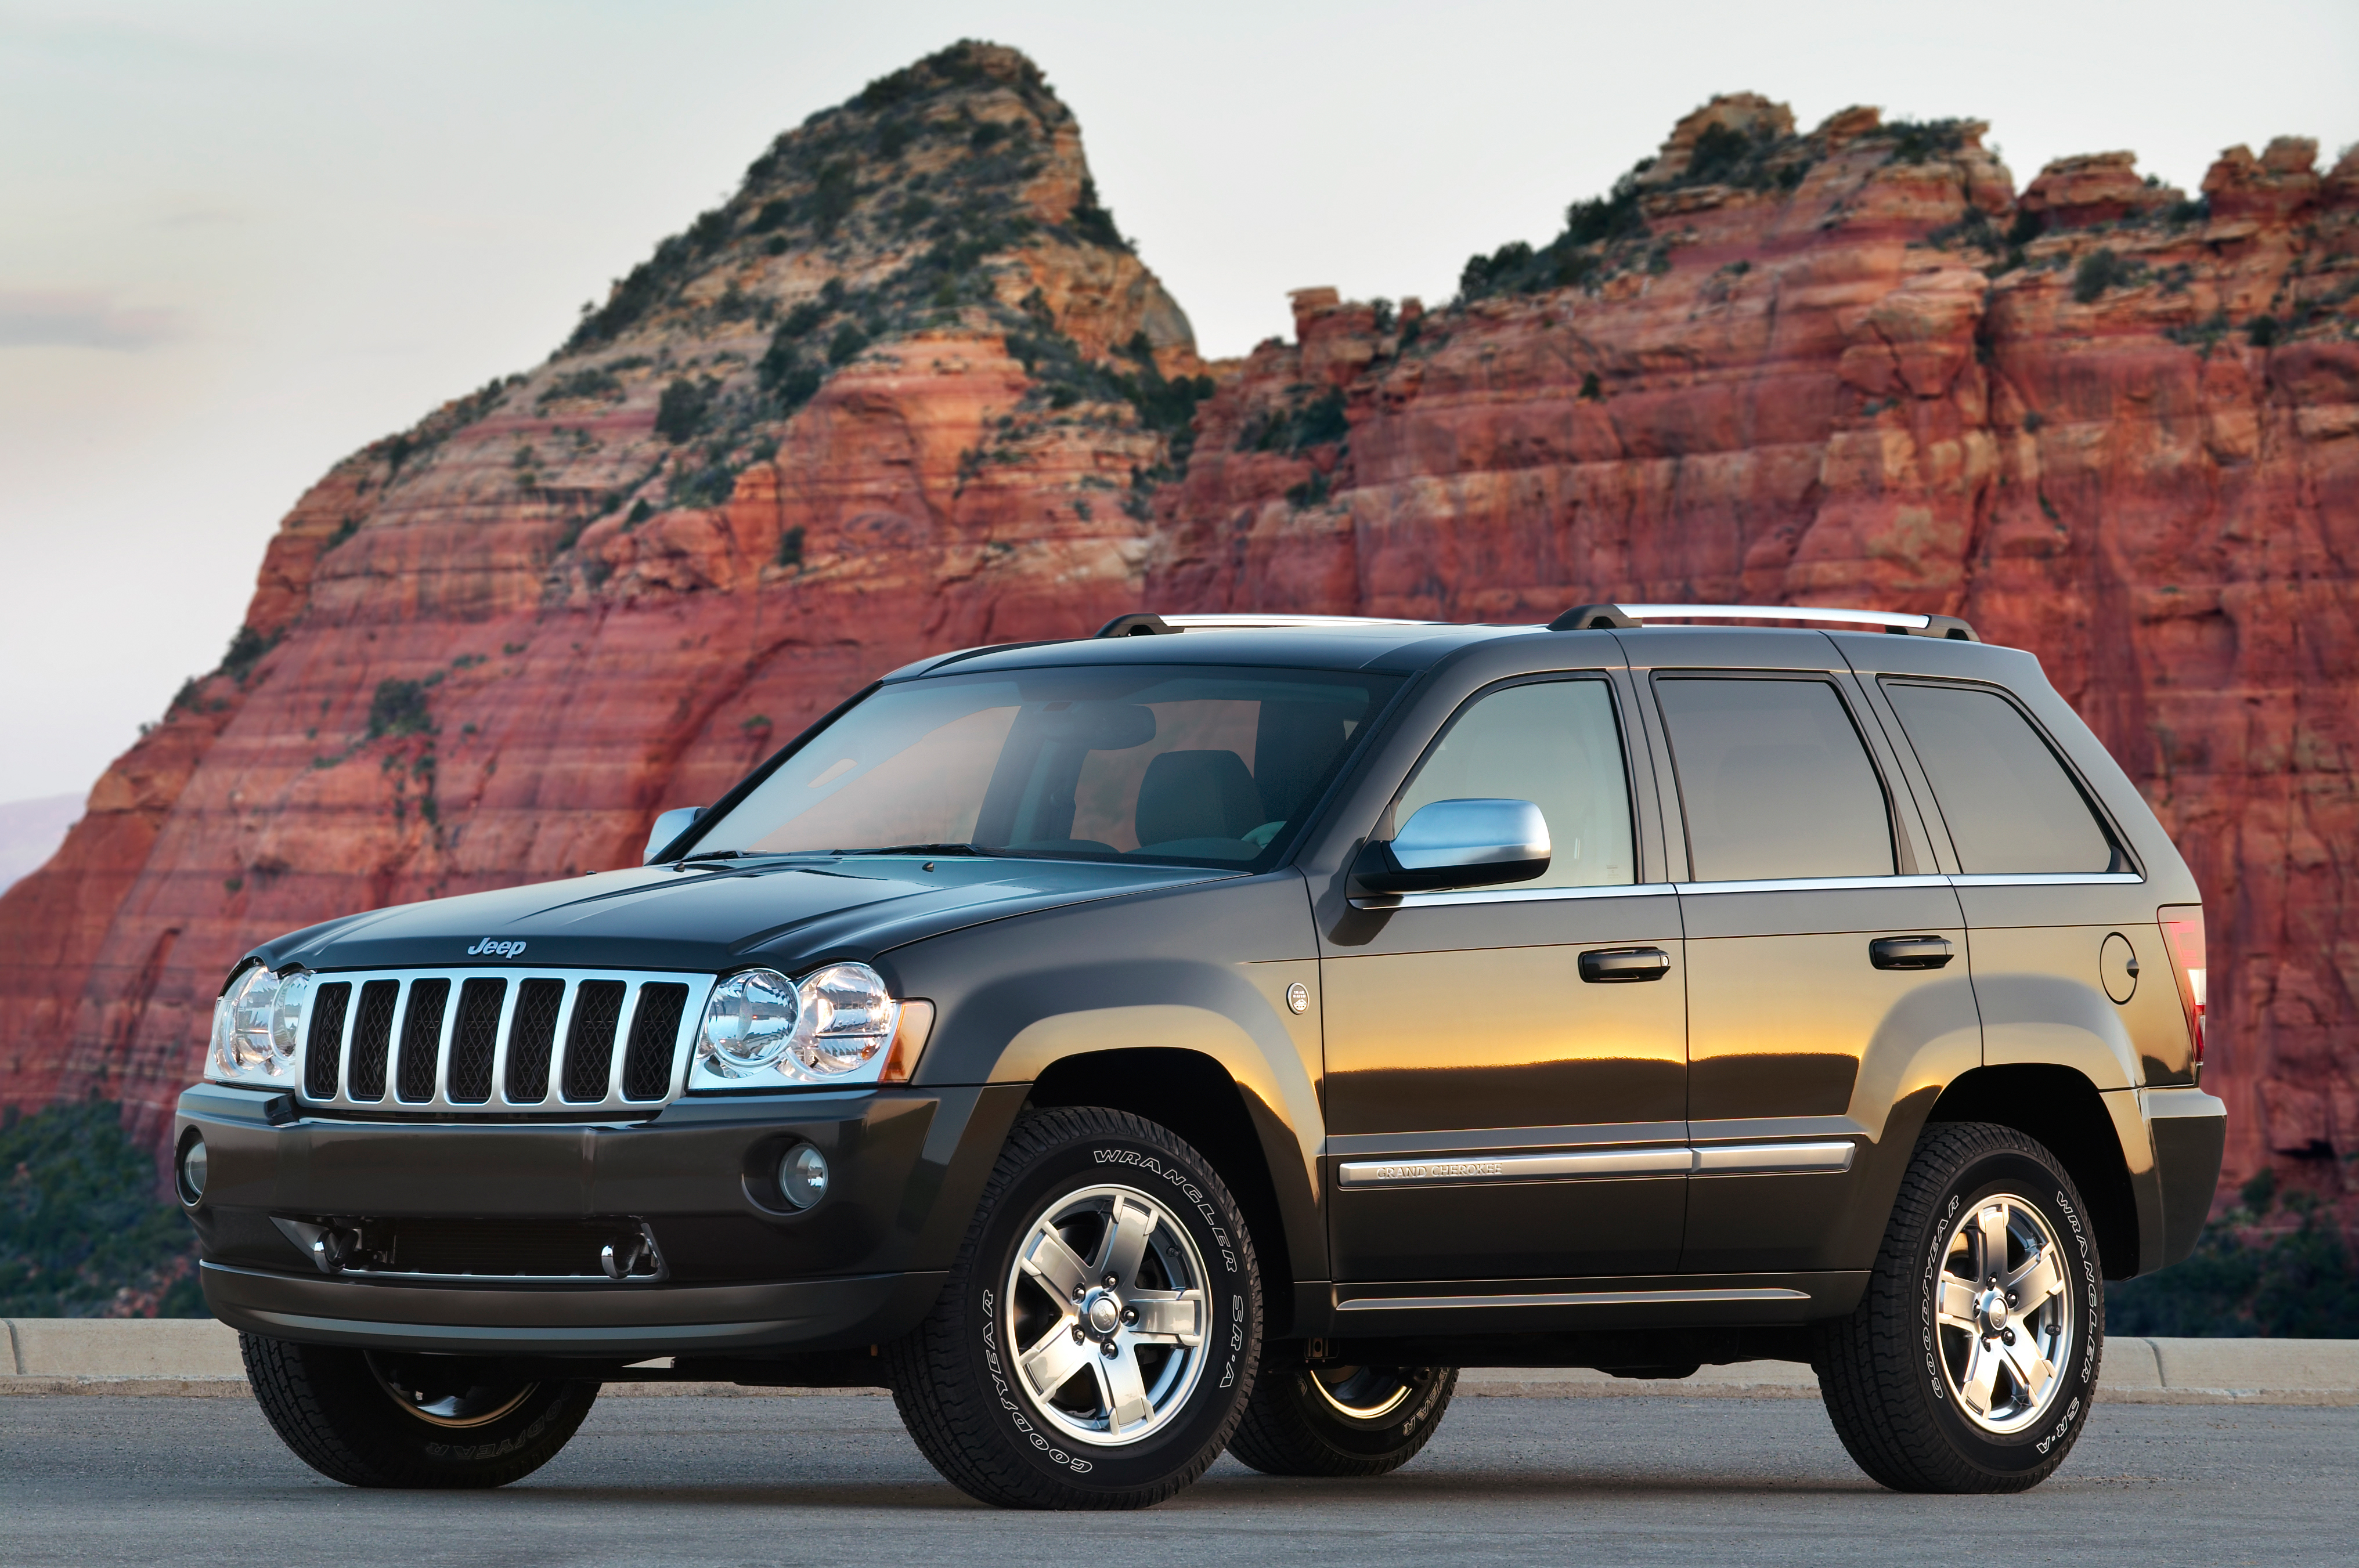 2005 jeep grand cherokee | fuel infection